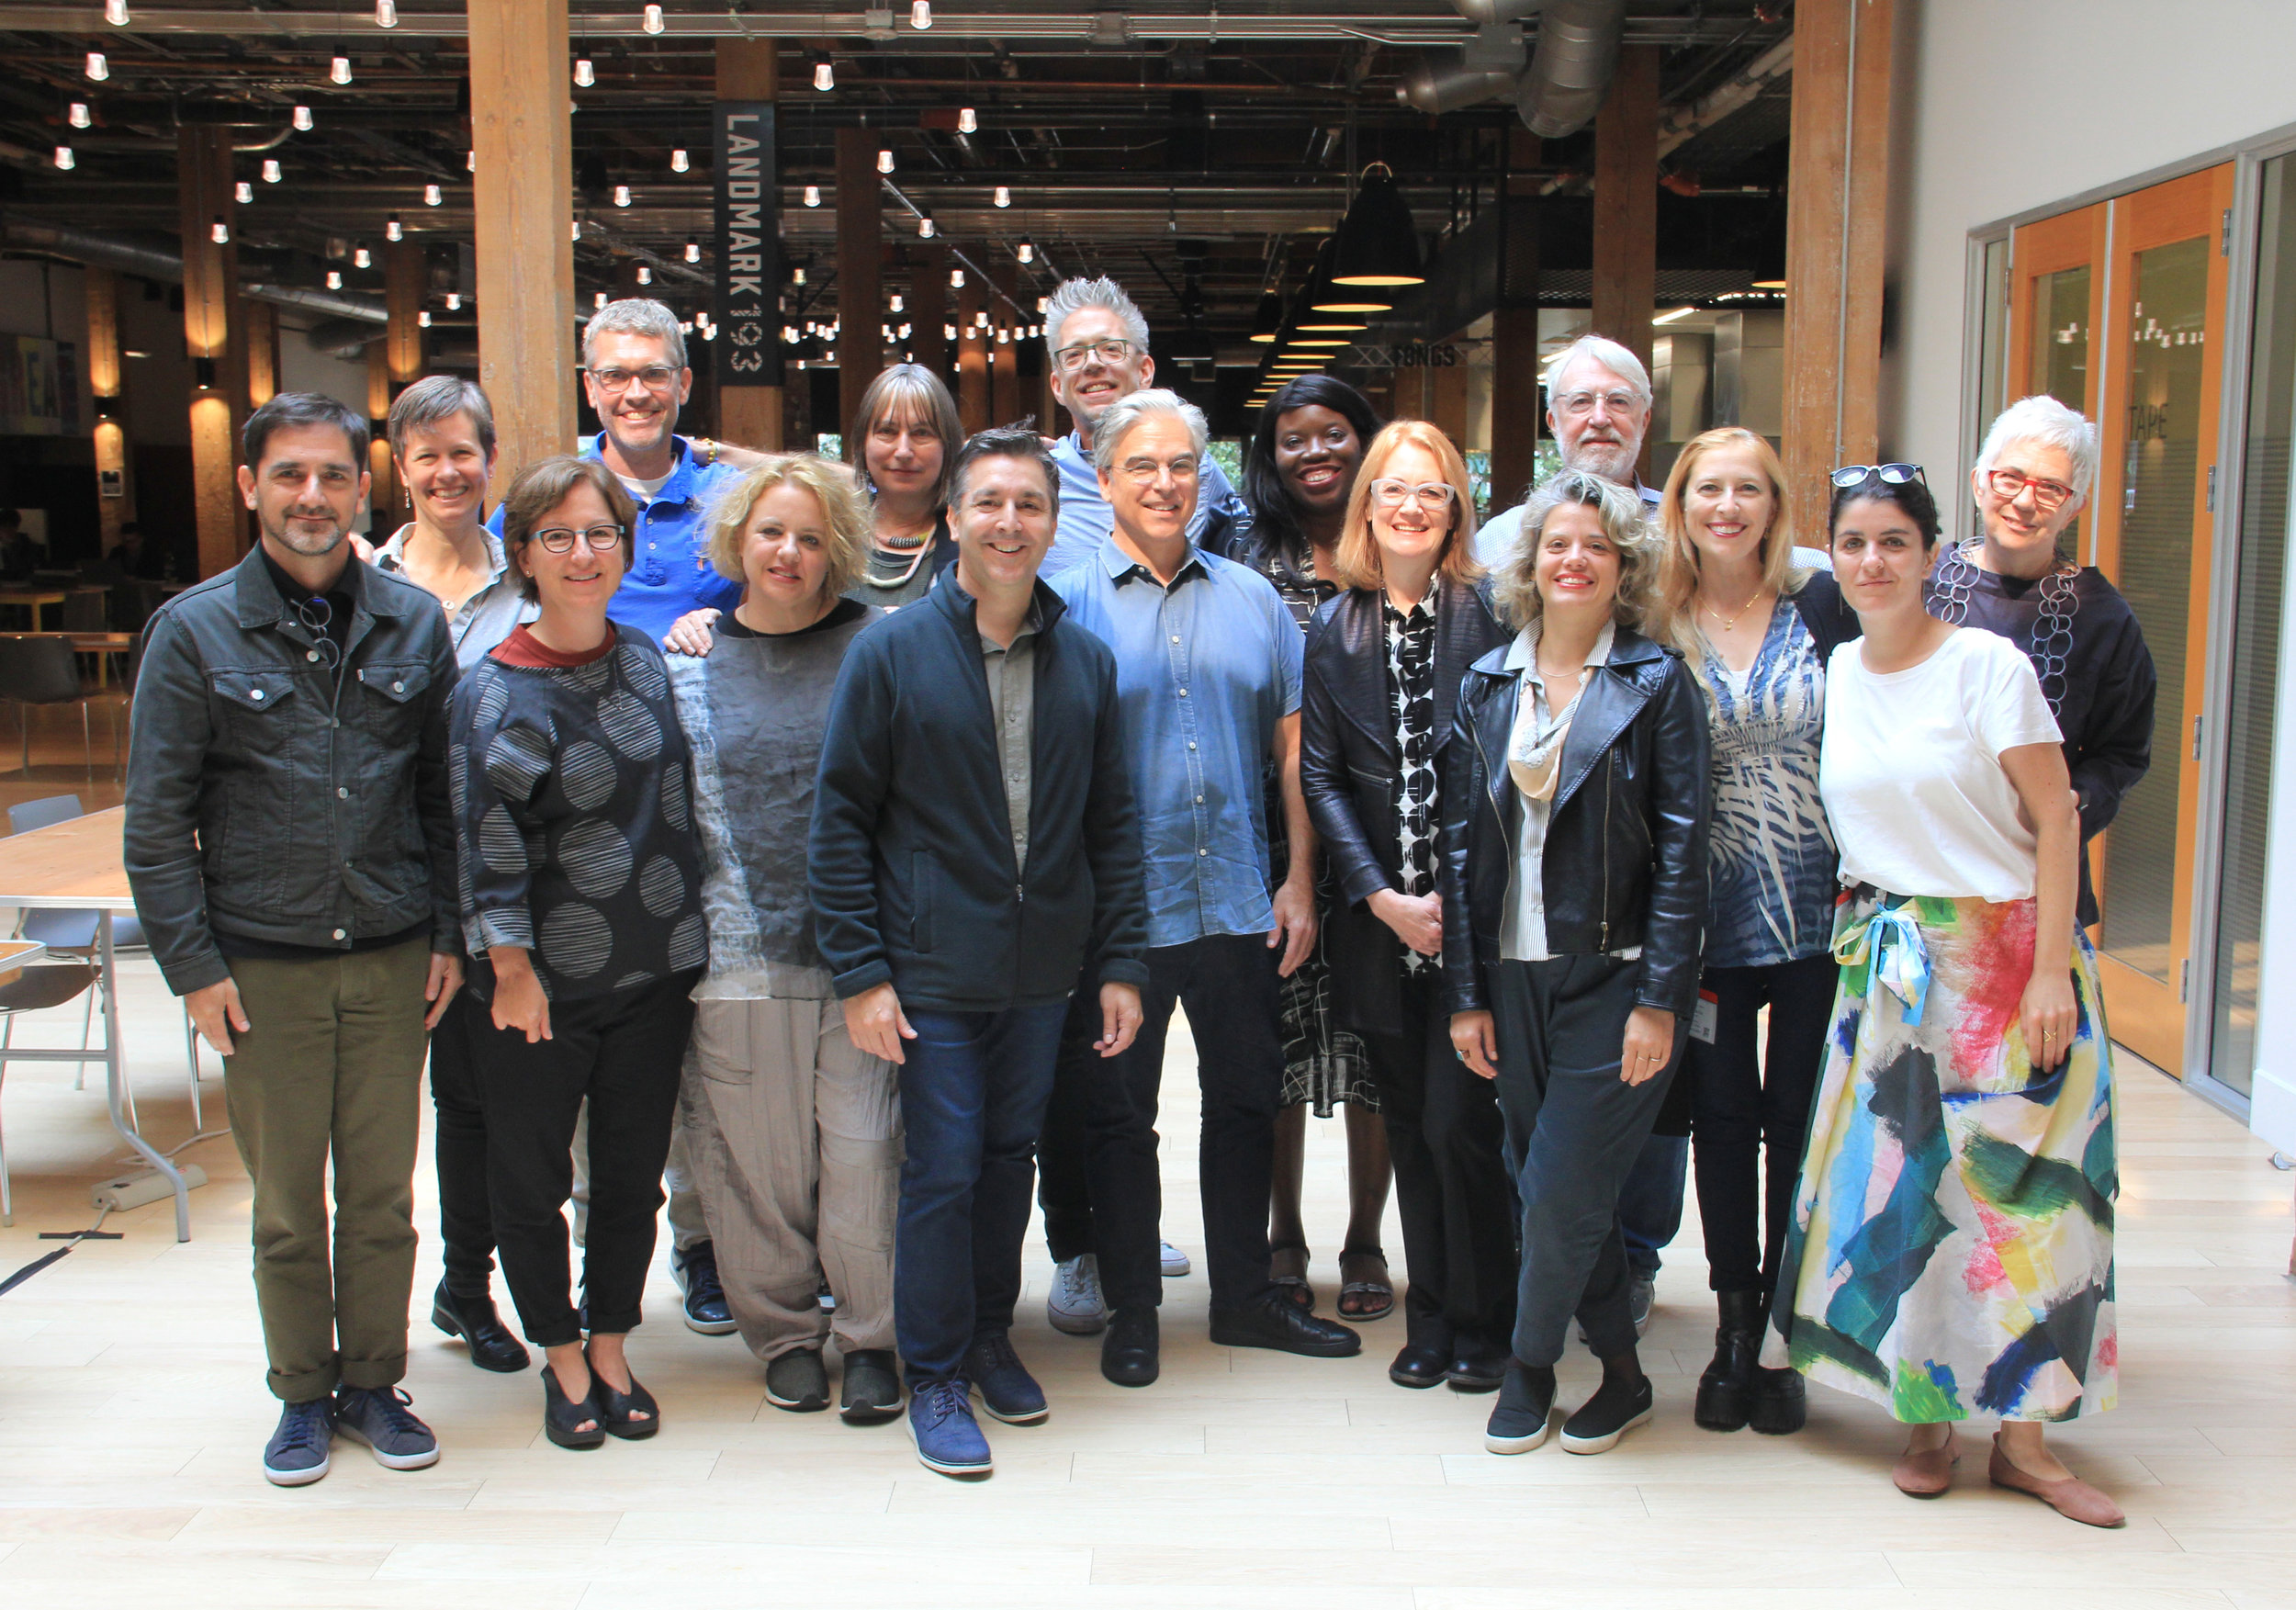 2018 Winterhouse Symposium participants at Adobe